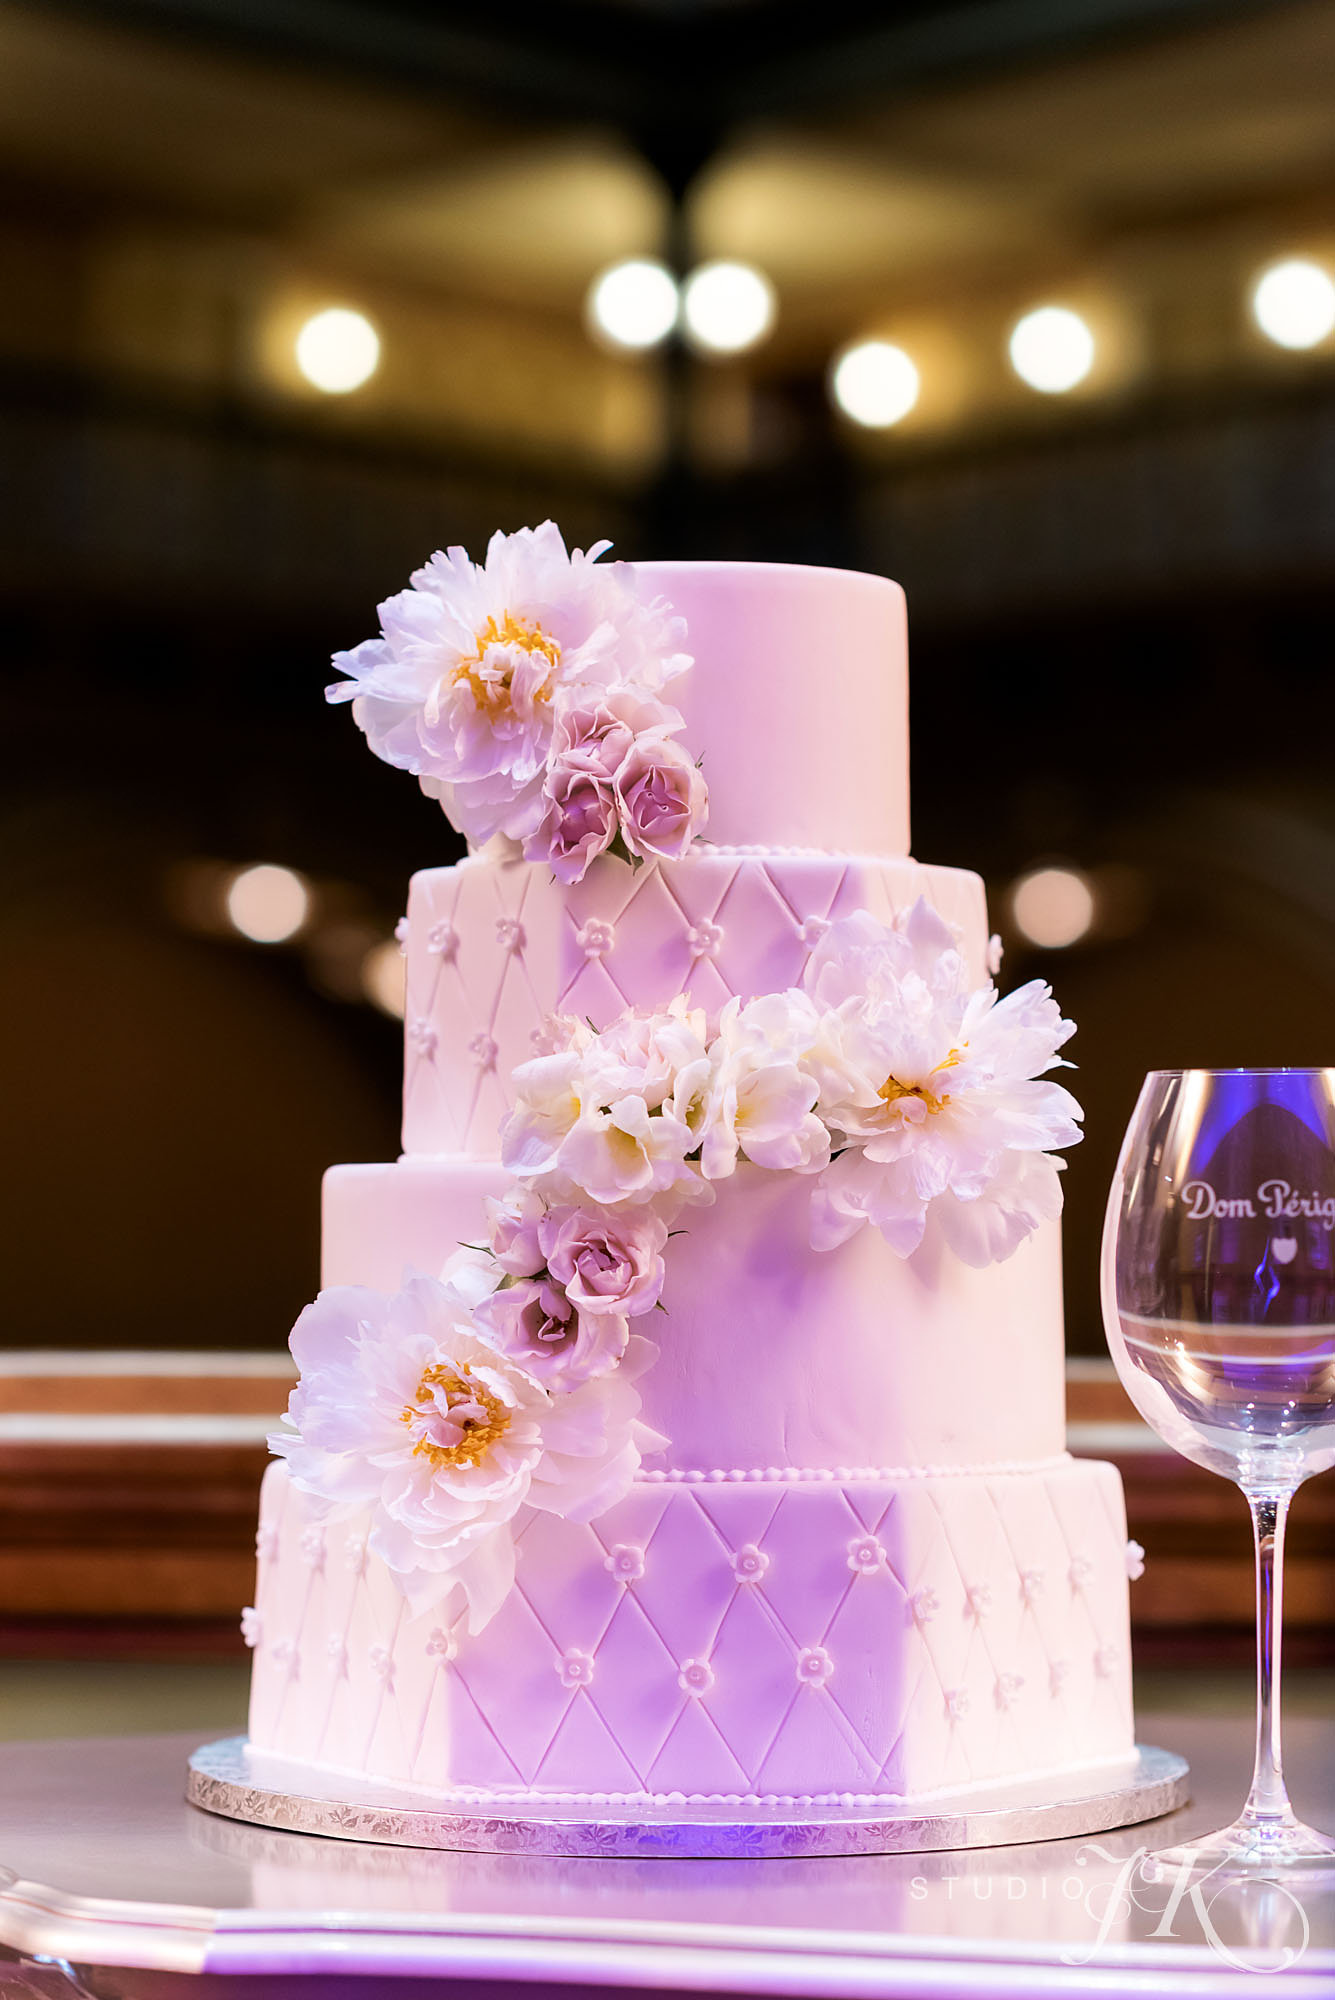 Brown Palace_wedding cake_studio JK_Cloud 9